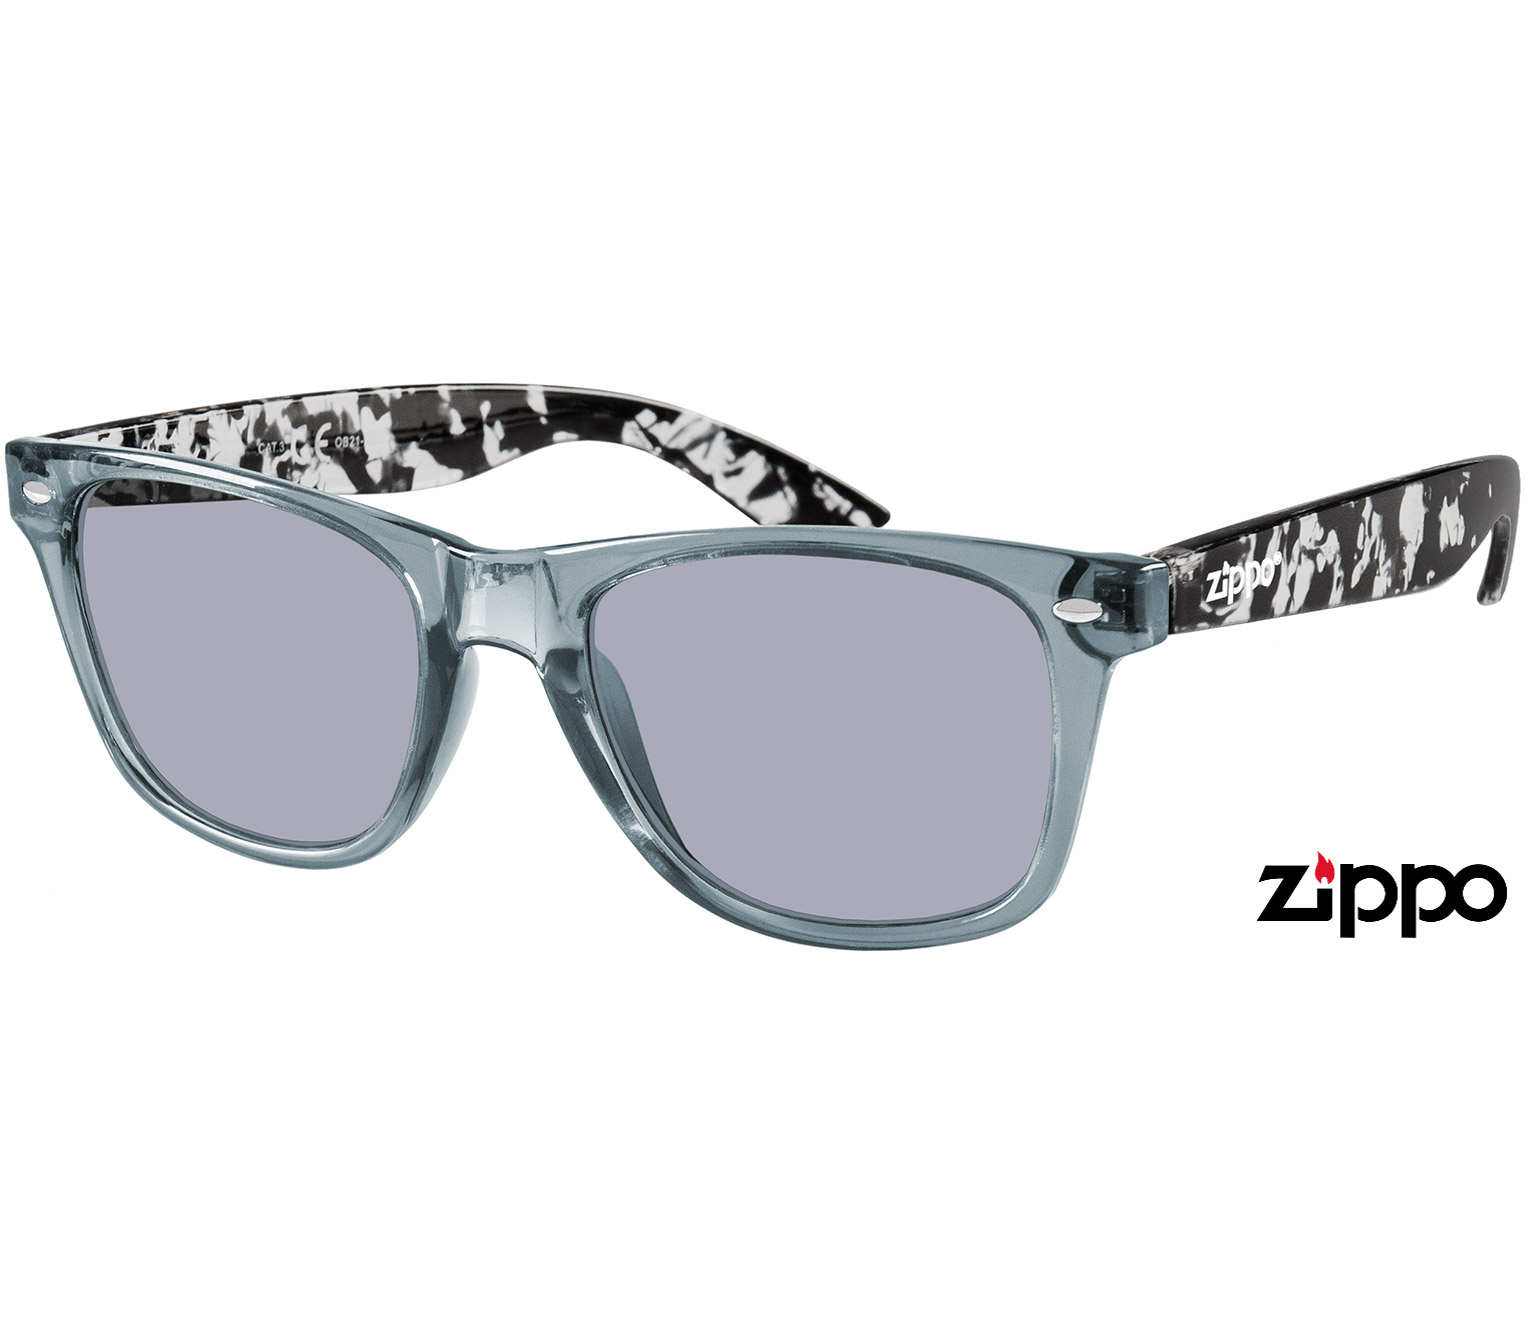 Main Image (Angle) - Spectrum (Grey) Wayfarer Sunglasses